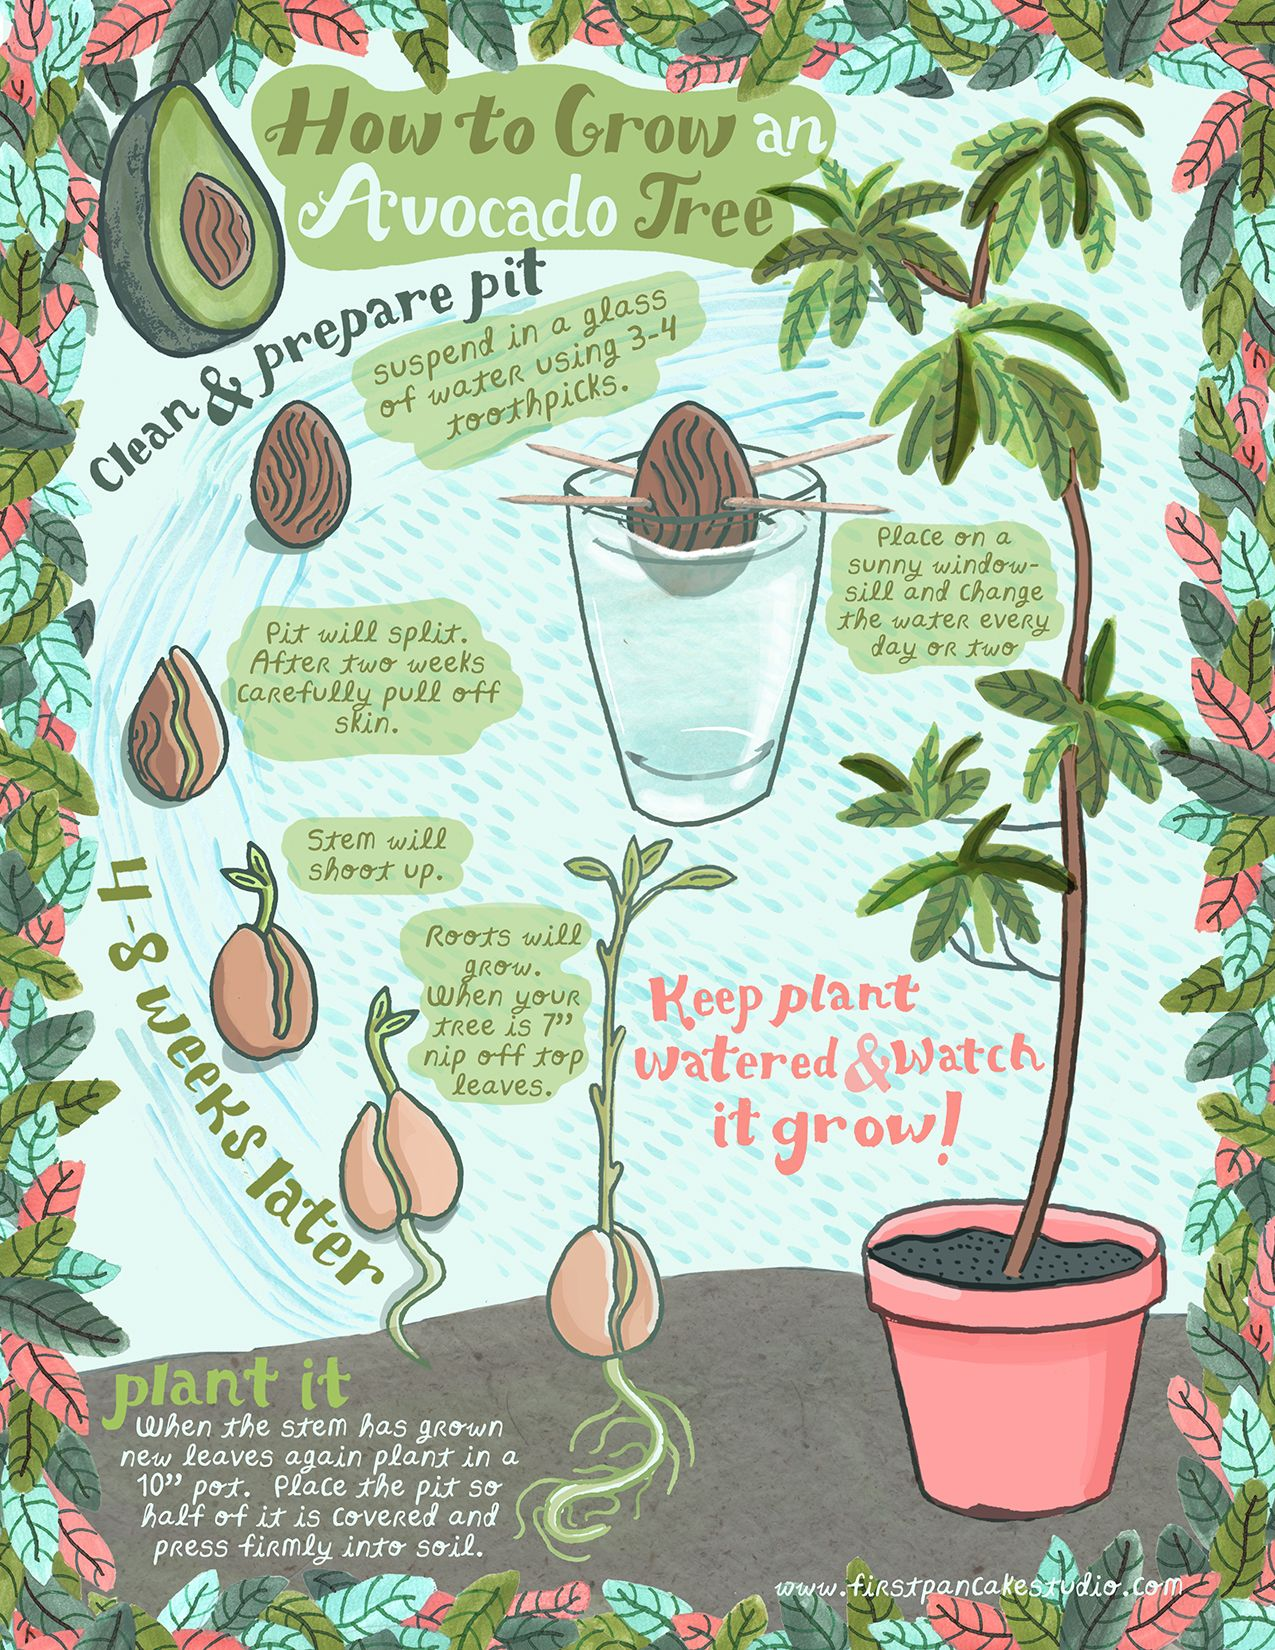 Walk Barefoot How To Grow An Avocado Tree From A Pit